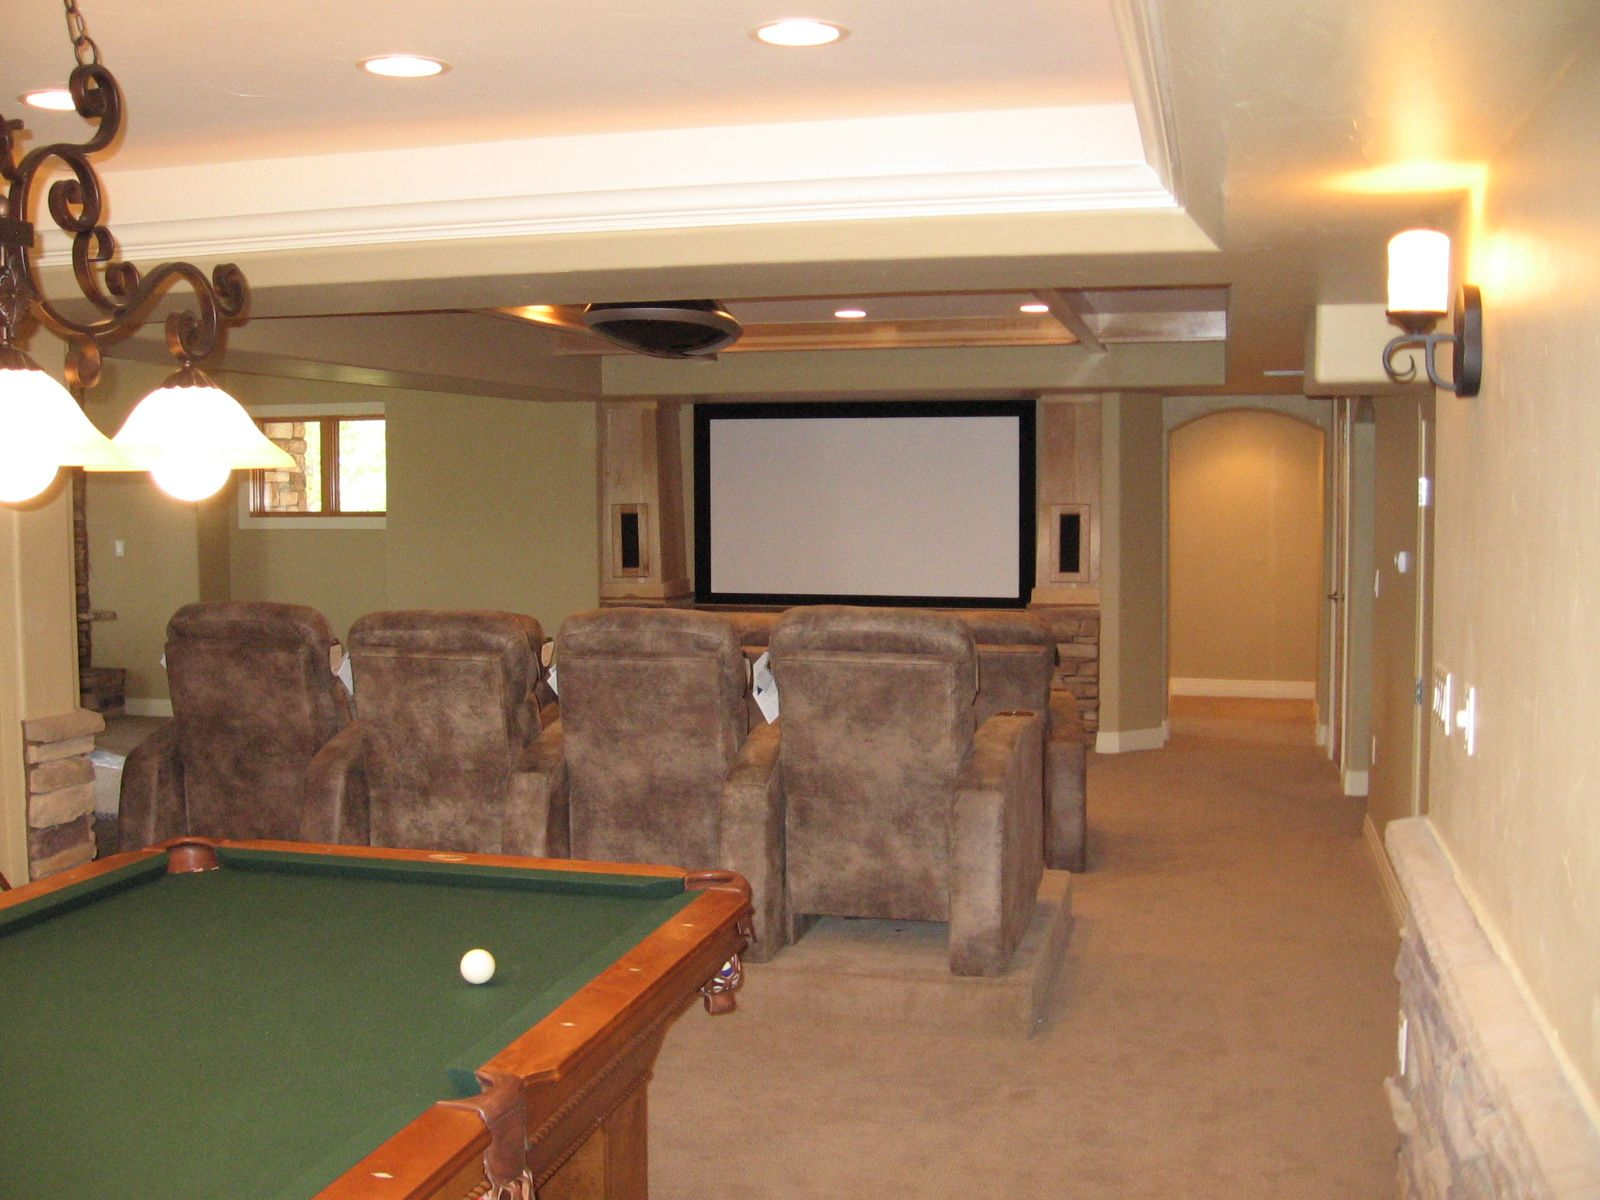 Finished Basement Pics Best 25 Small Finished Basements Ideas On Pinterest  Finished